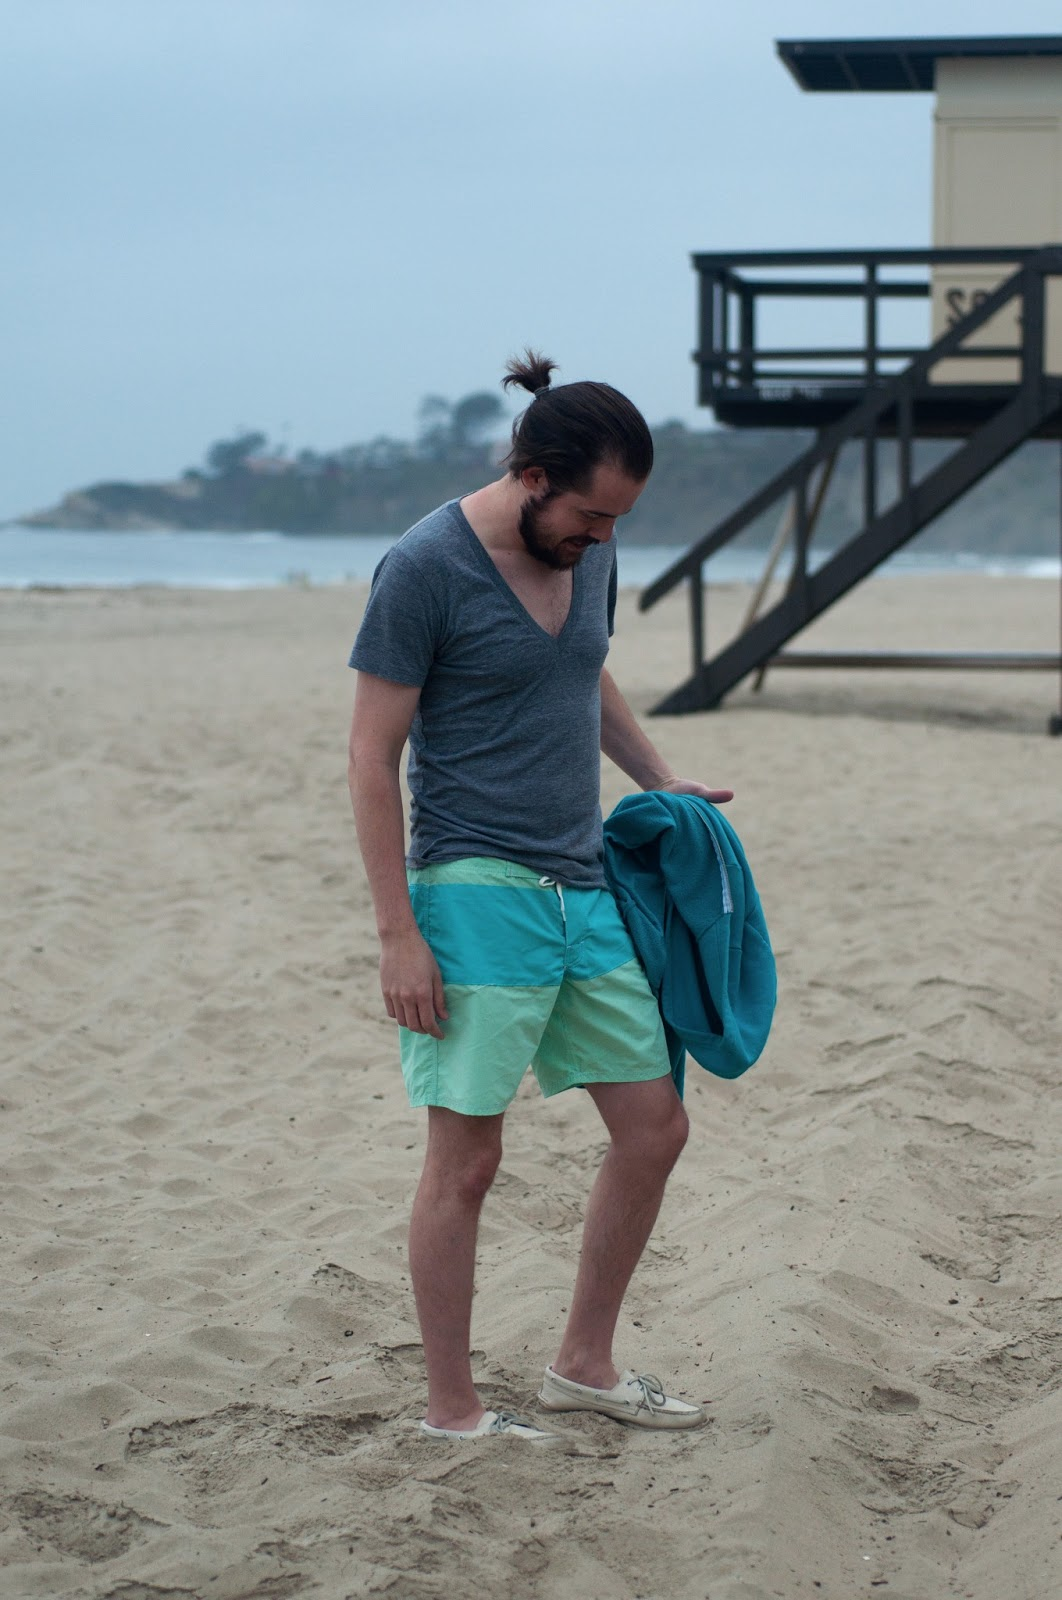 fashion blog, fashion blogger, style blog, style blogger, mens fashion, mens fashion blog, mens style, mens style blog, womens style blog, anthropologie ootd blog, anthropologie ootd, anthropologie, ootd, mens ootd, womens ootd, mens beach wear, beach wear, what to wear to the beach, zara swim shorts, zara, sperry topsider, color block swim, color block, american apparel, california beach, beach, target, target mens tank top, target tank,